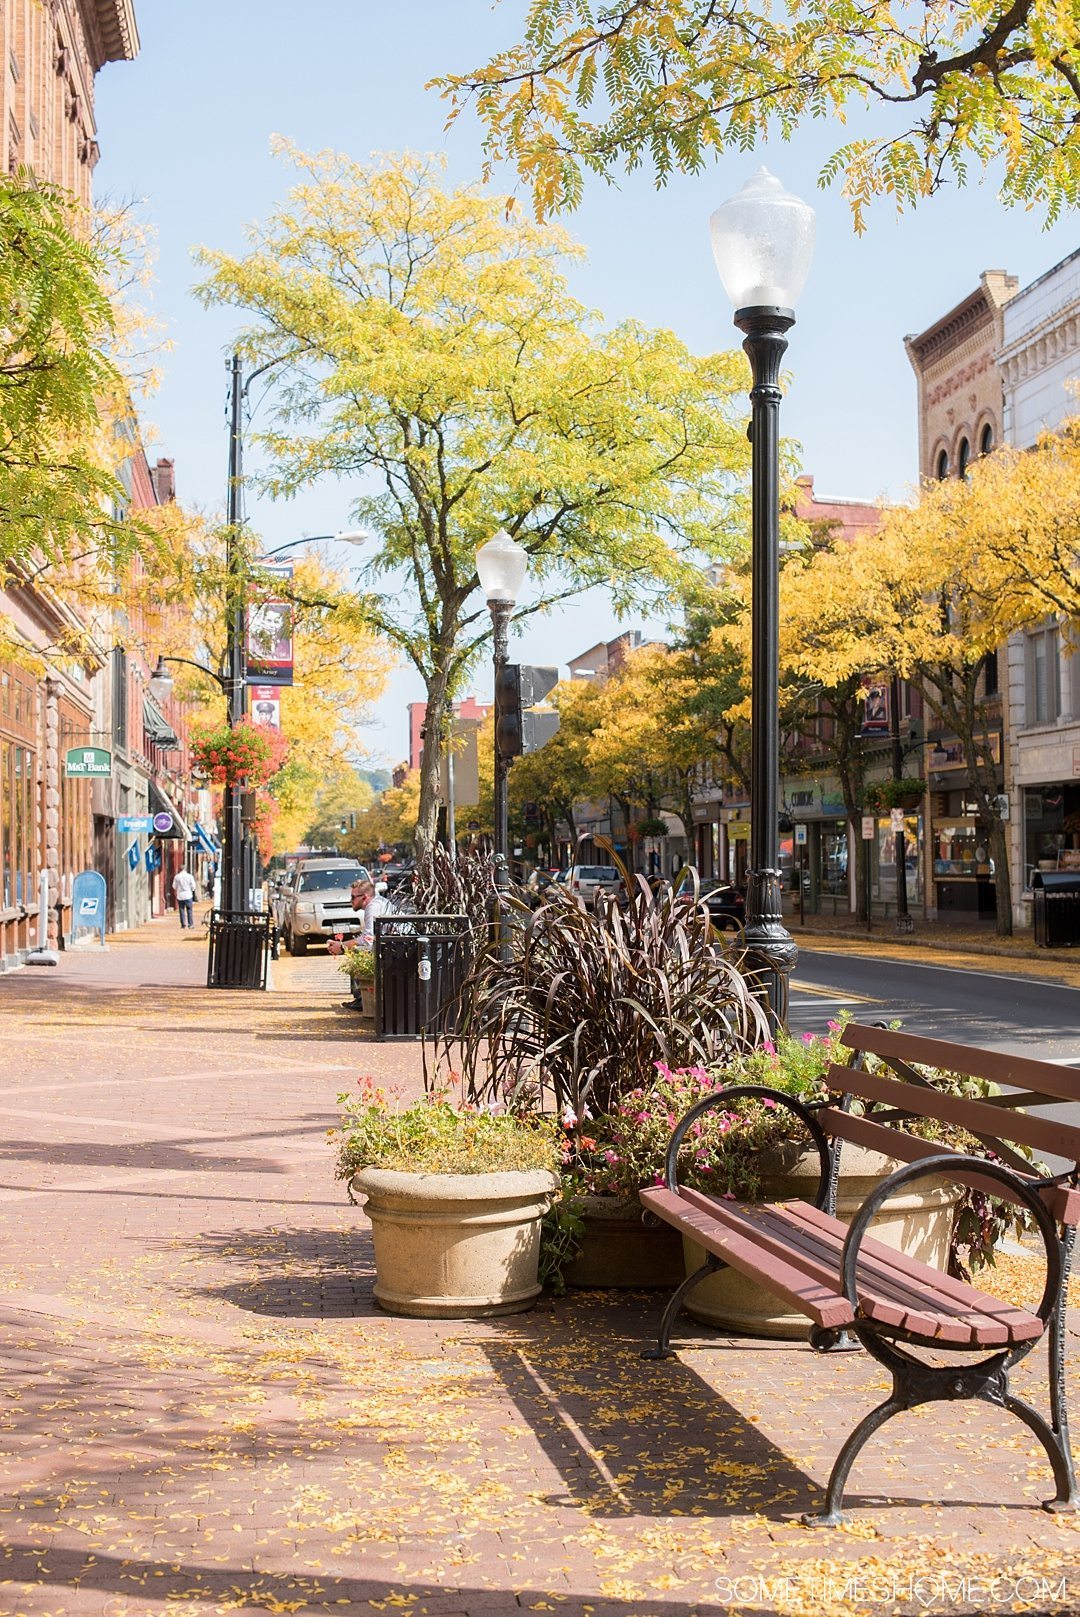 Things to do in Corning NY in the Finger Lakes region on Sometimes Home travel blog. Photo of the downtown area on W. Market Street.